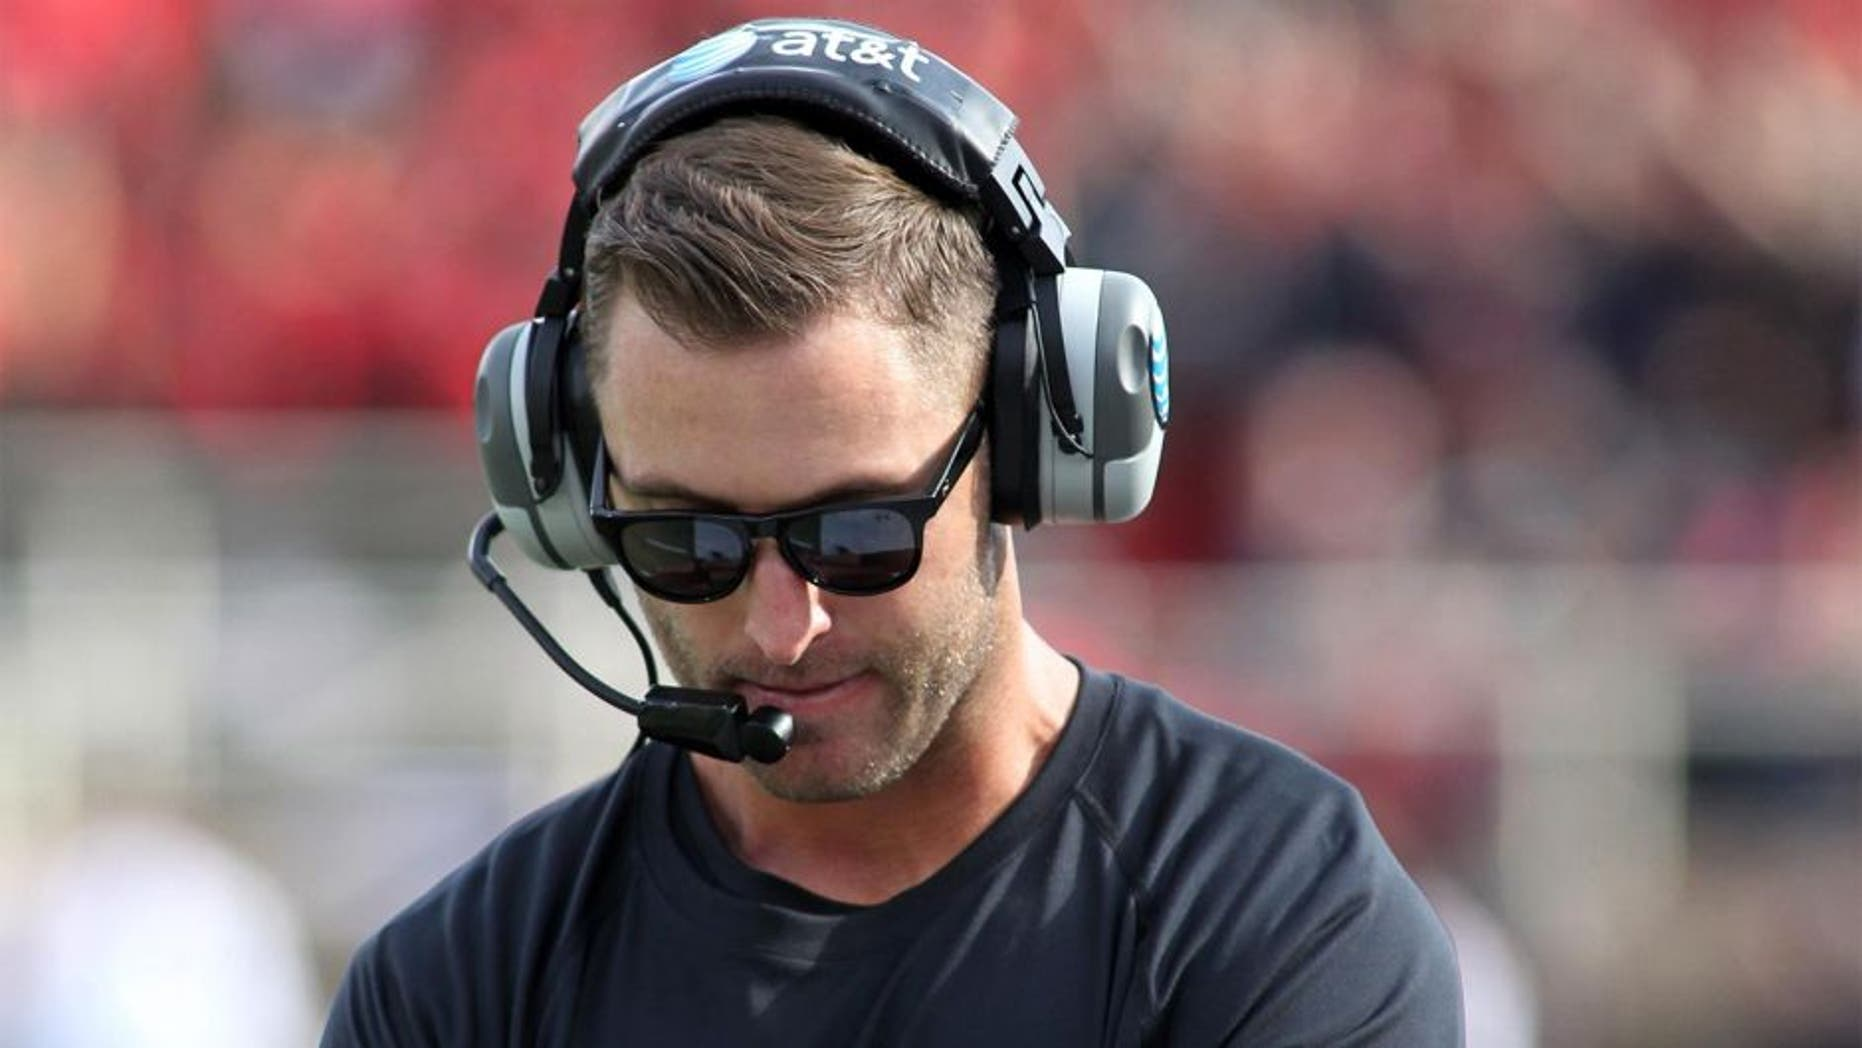 Sep 13, 2014; Lubbock, TX, USA; Texas Tech Red Raiders head coach Kliff Kingsbury looks on from the sidelines during the fourth quarter in the game with the Arkansas Razorbacks at Jones AT&T Stadium. Mandatory Credit: Michael C. Johnson-USA TODAY Sports